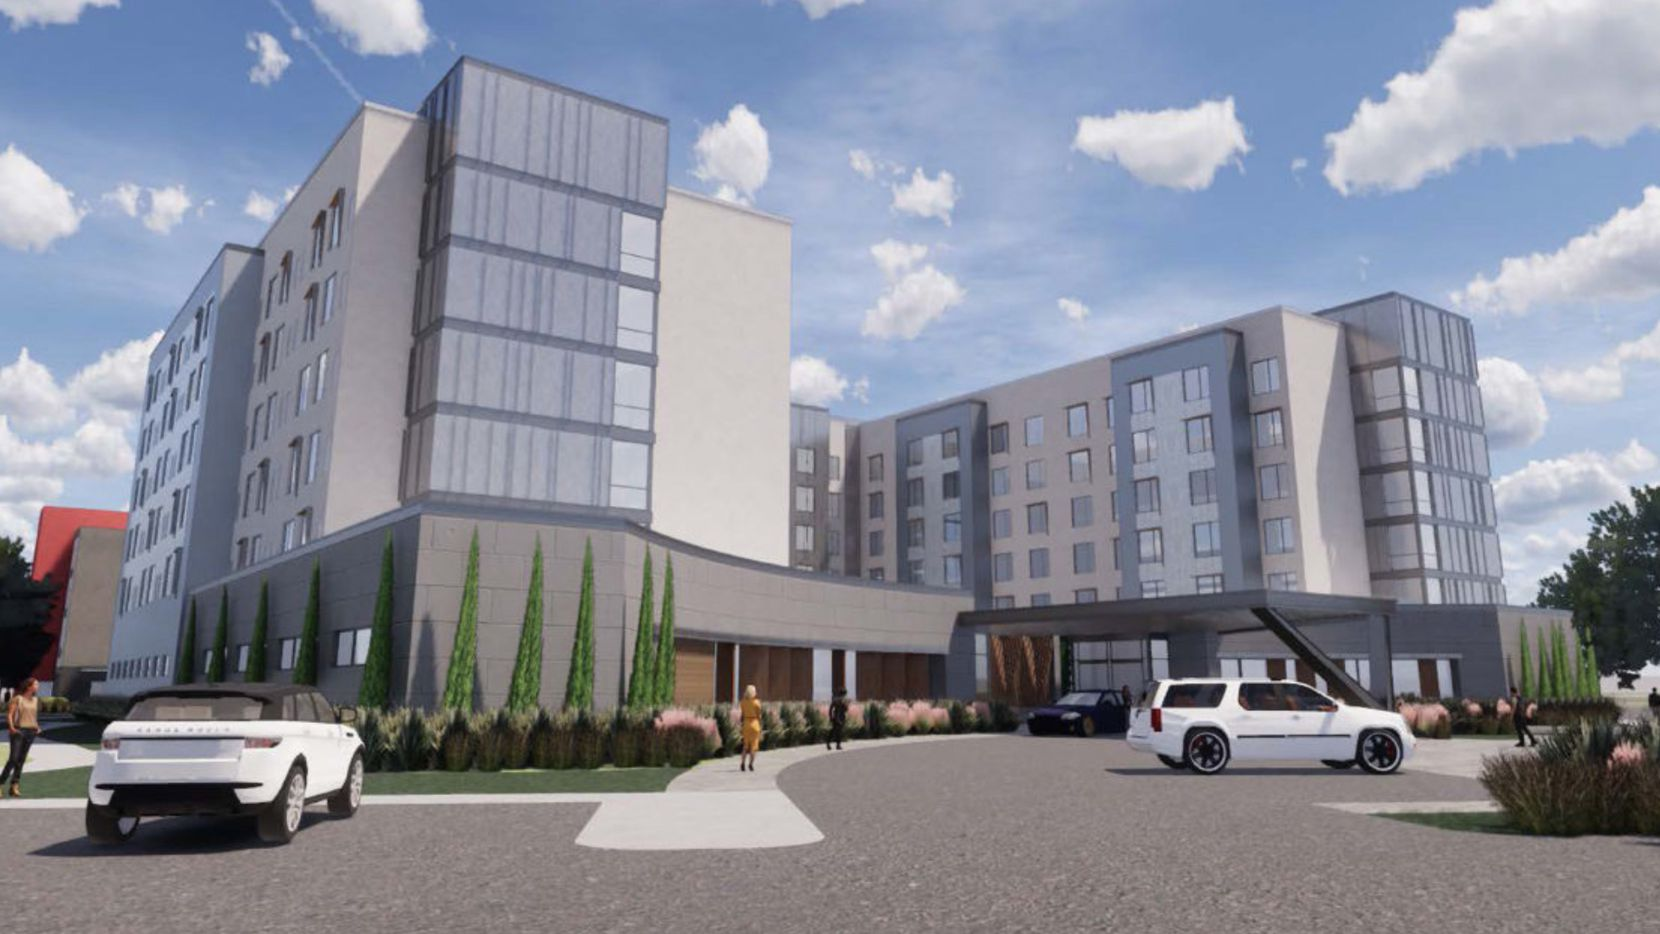 The new Avion Business Park hotels will be built on State Highway 114.